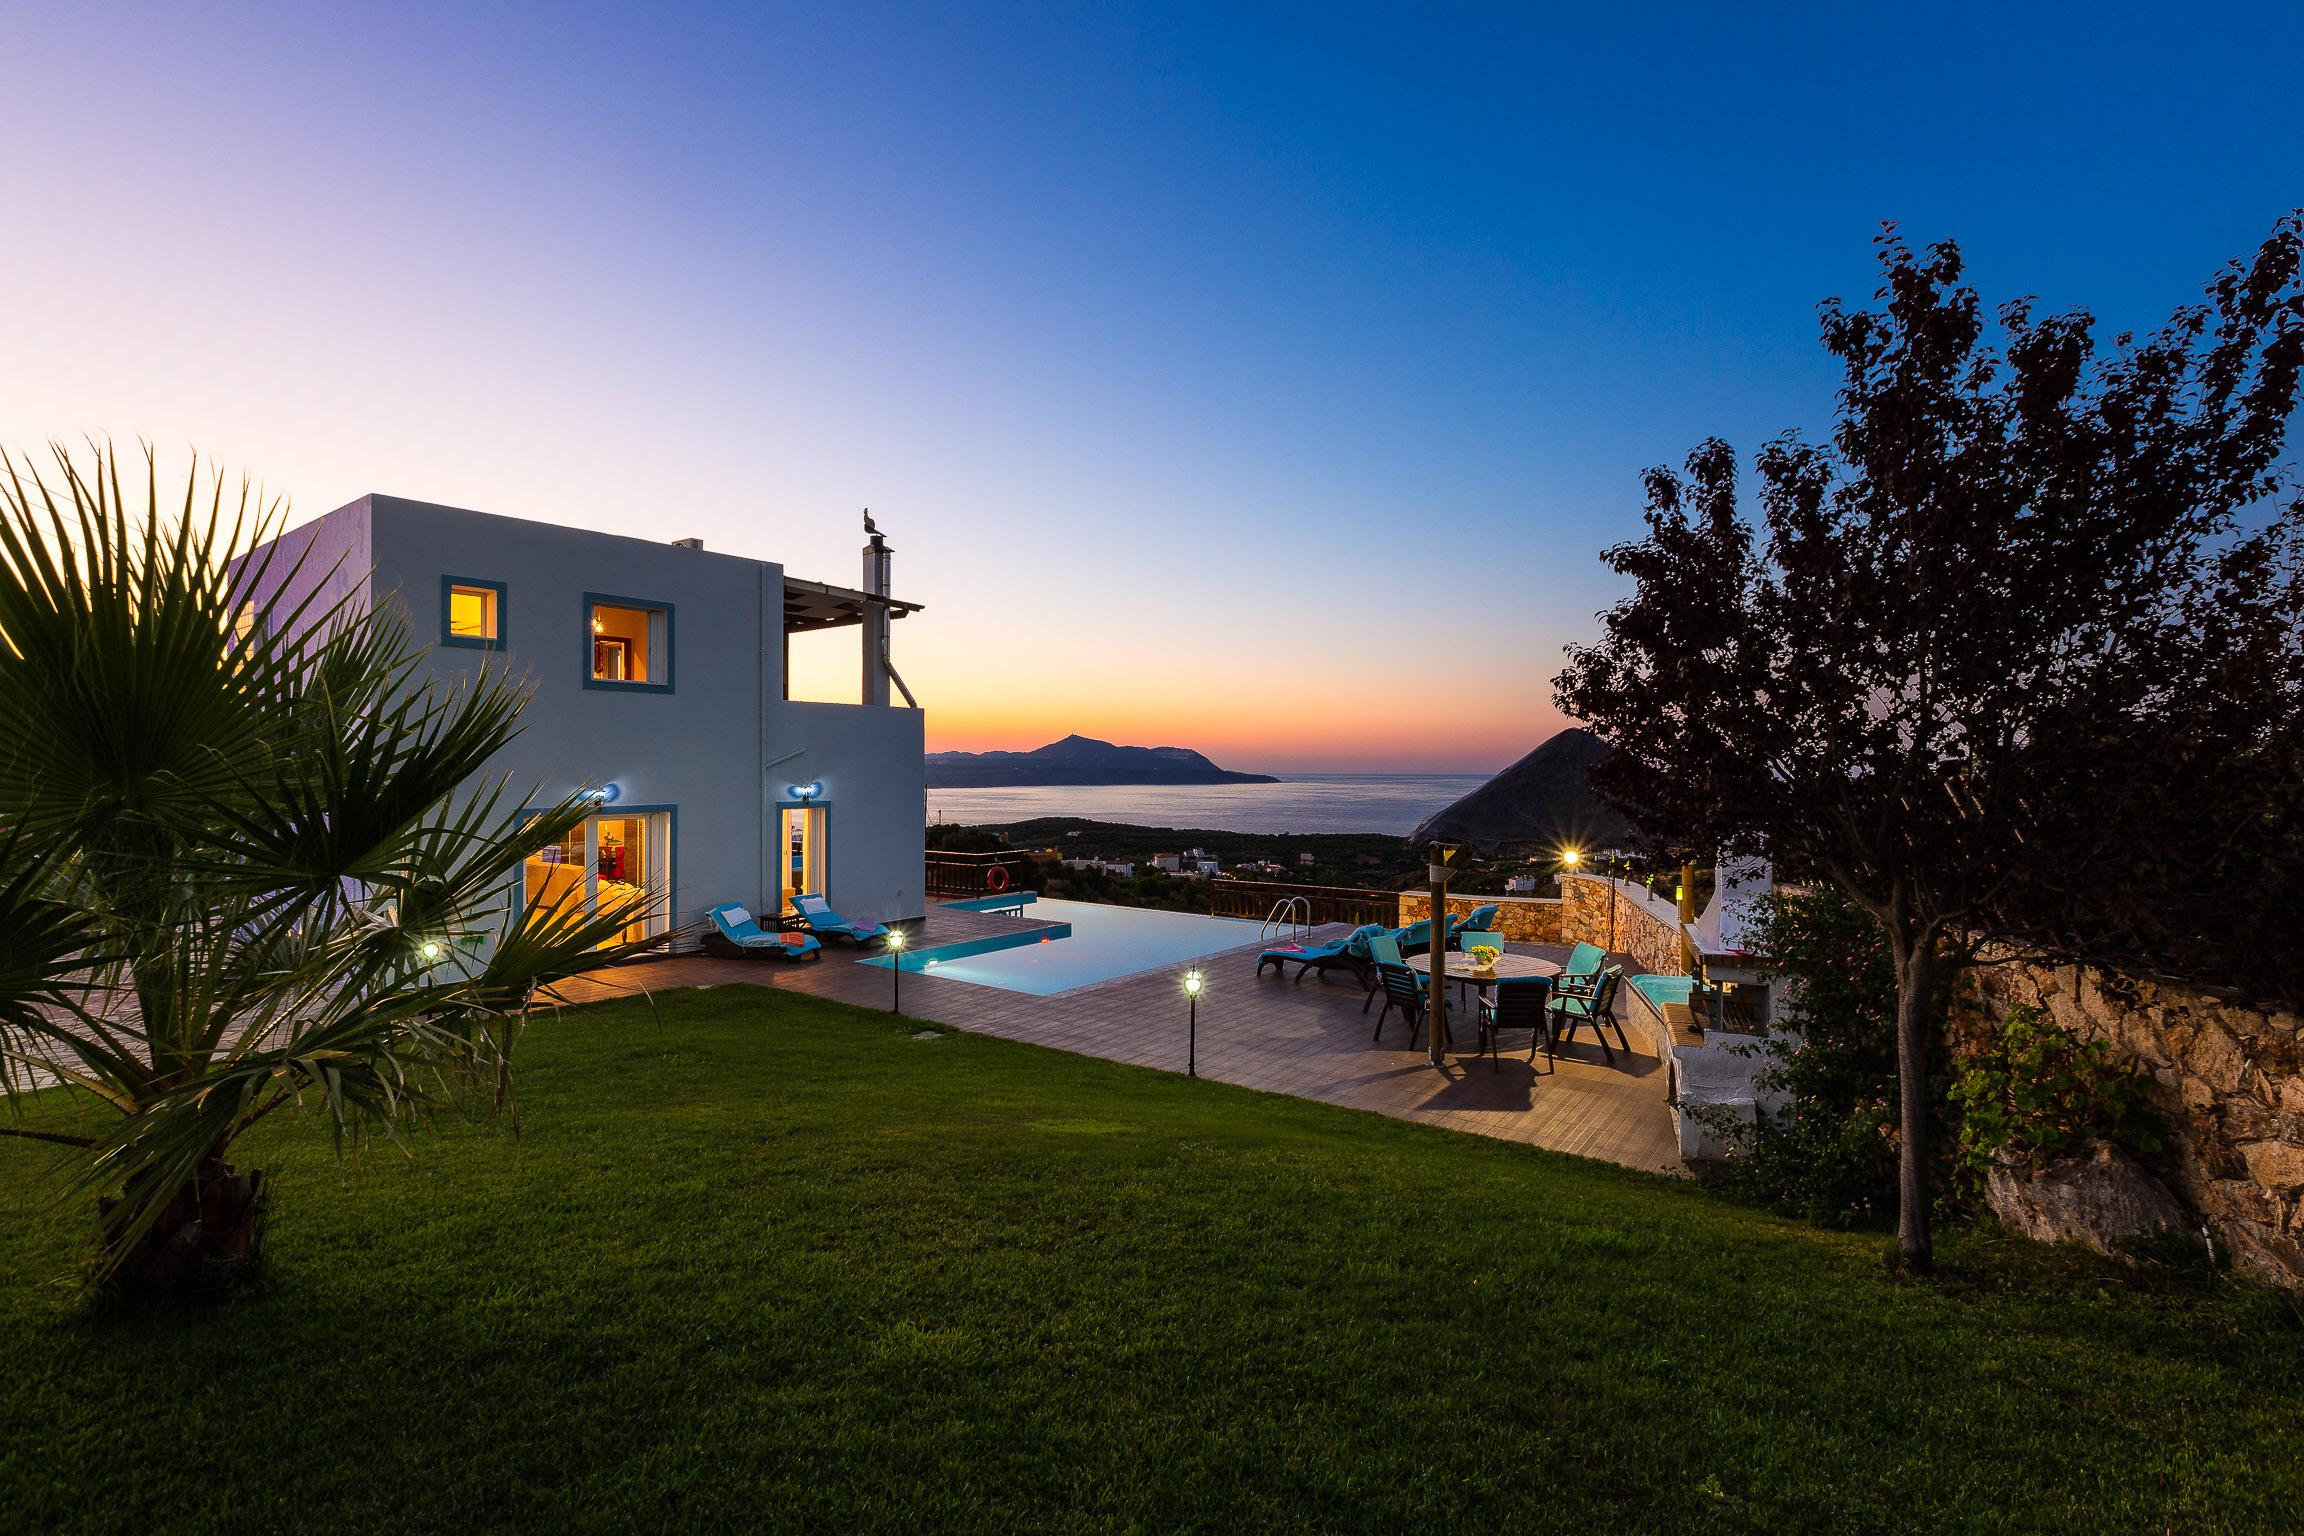 Property Image 2 - Modern villa with breathtaking sea views